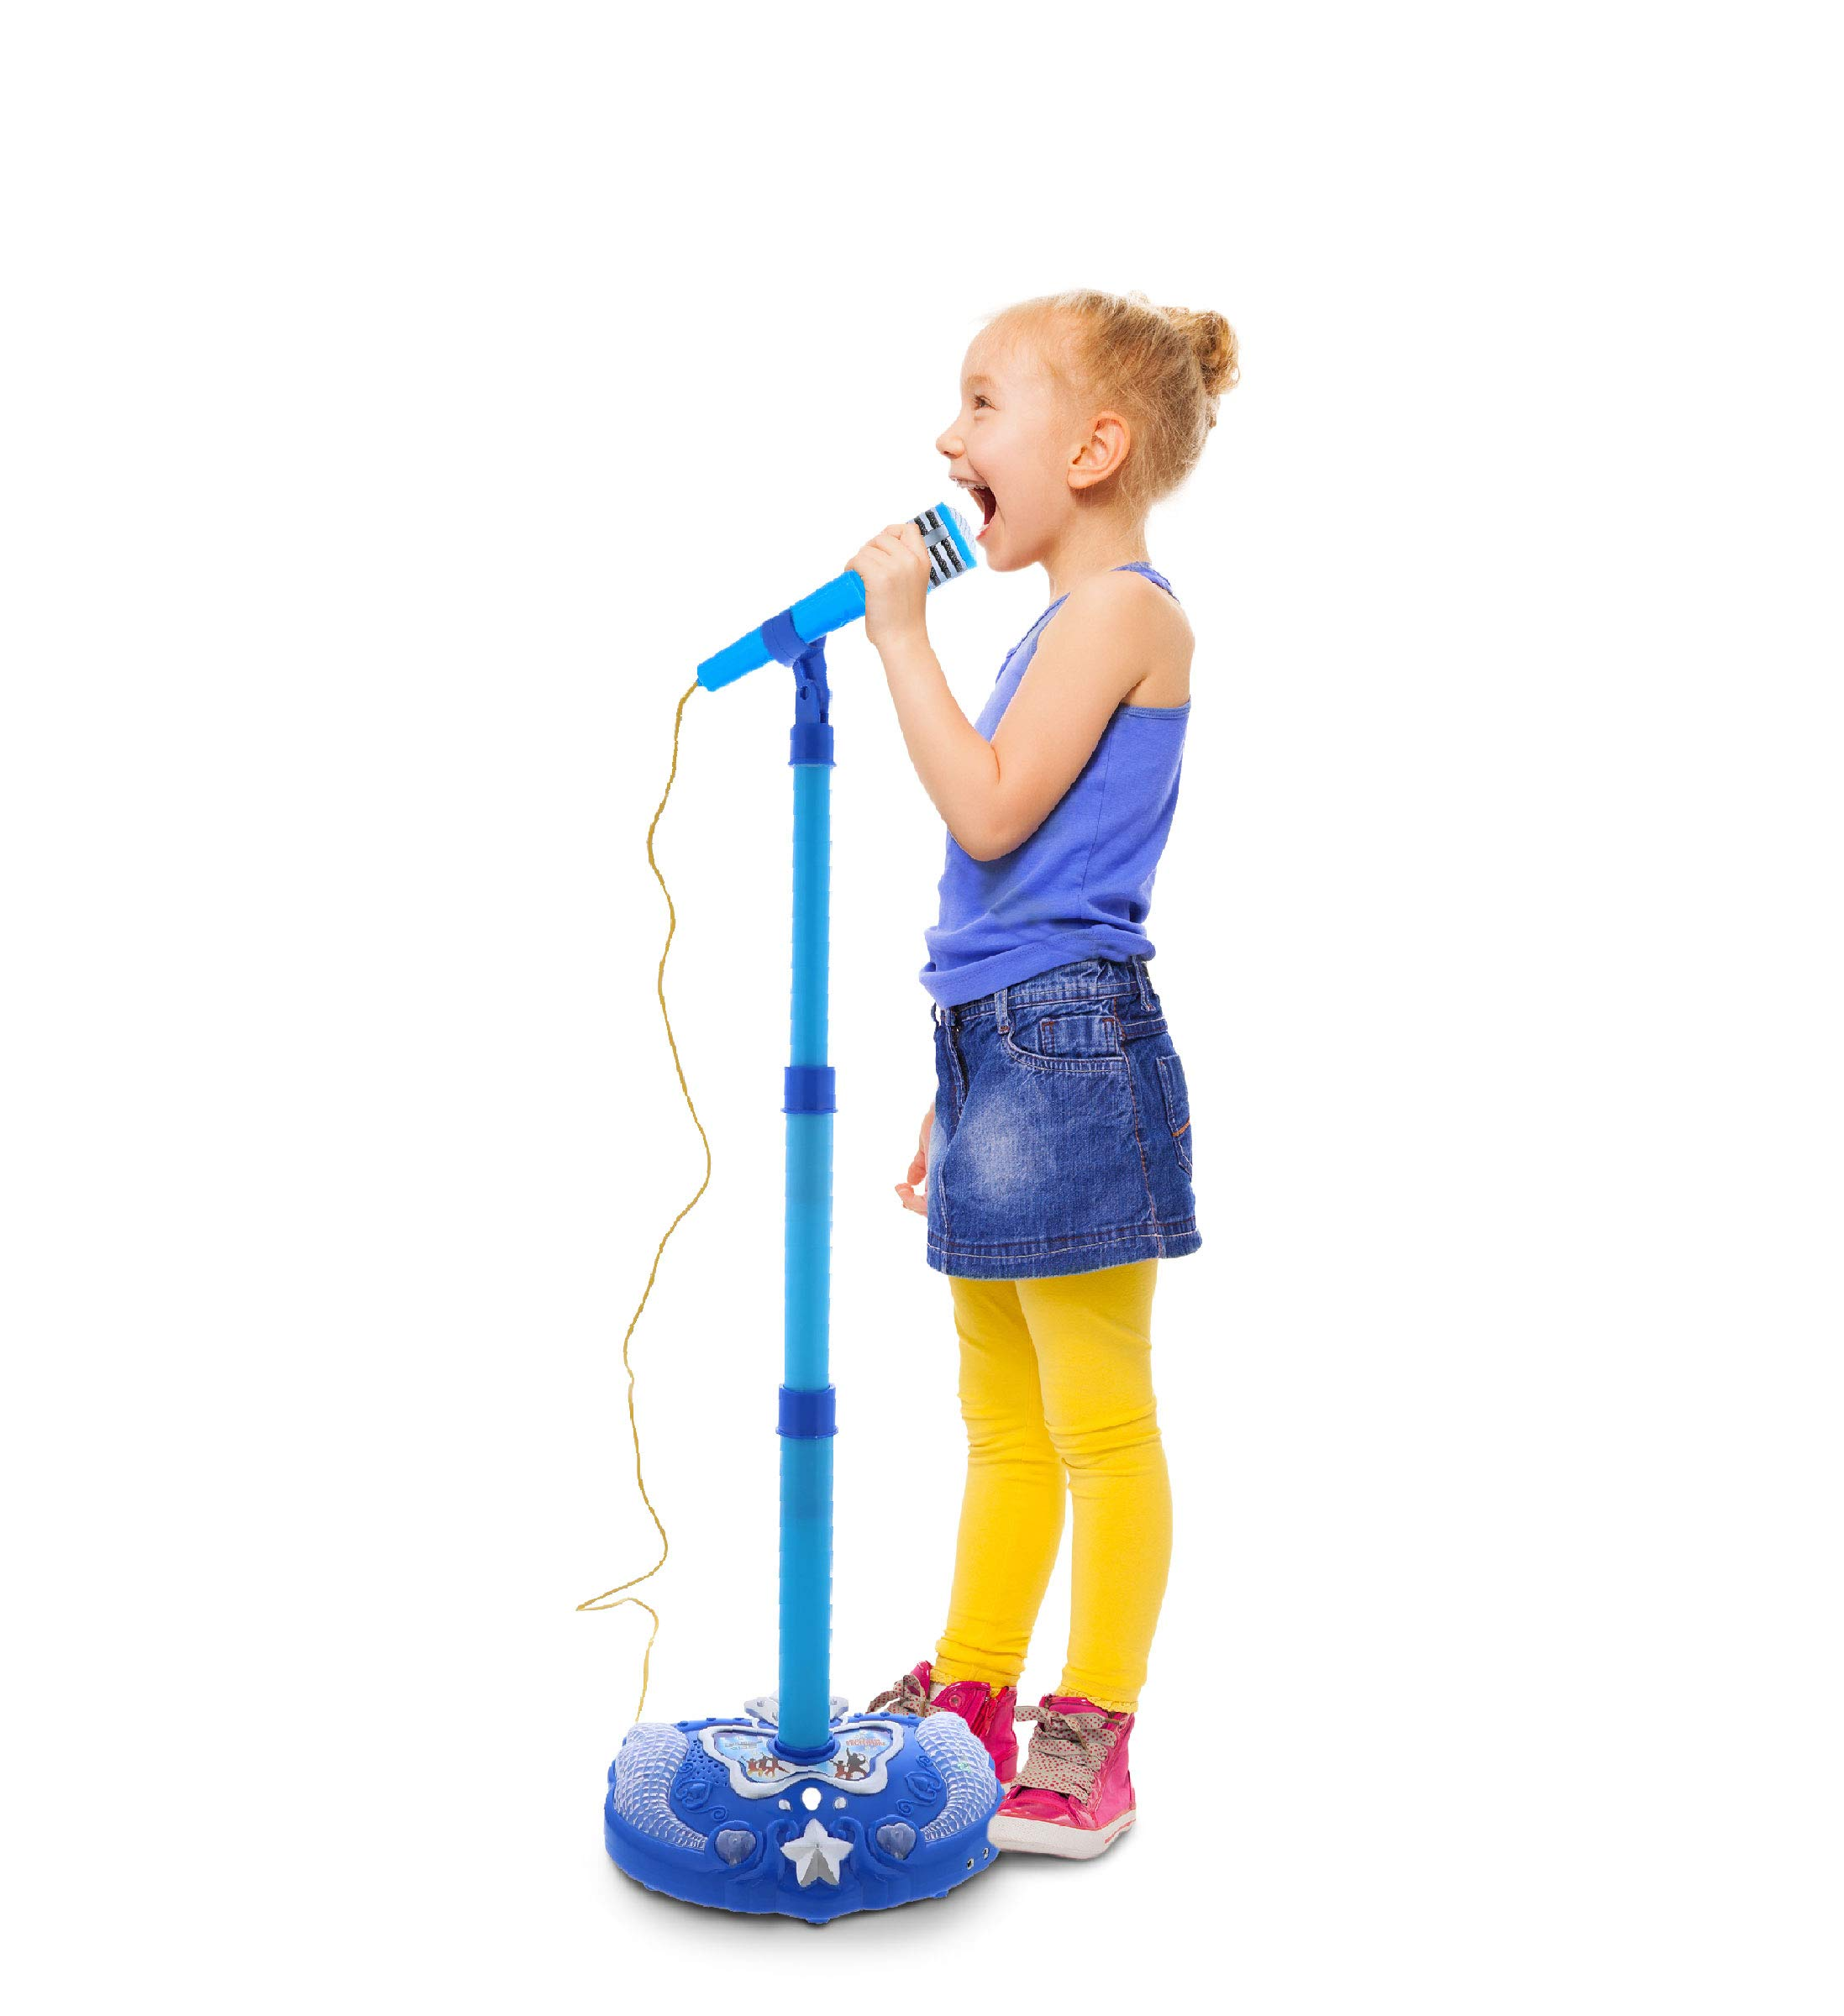 Mozlly Blue Light Up Karaoke Machine with Toy Microphone & Adjustable Stand, Connect to MP3 Player AUX Smart Phones for Solo Singing Parties Sing-A-Along Built in Speaker Flashing Lights for Kids by Mozlly (Image #3)